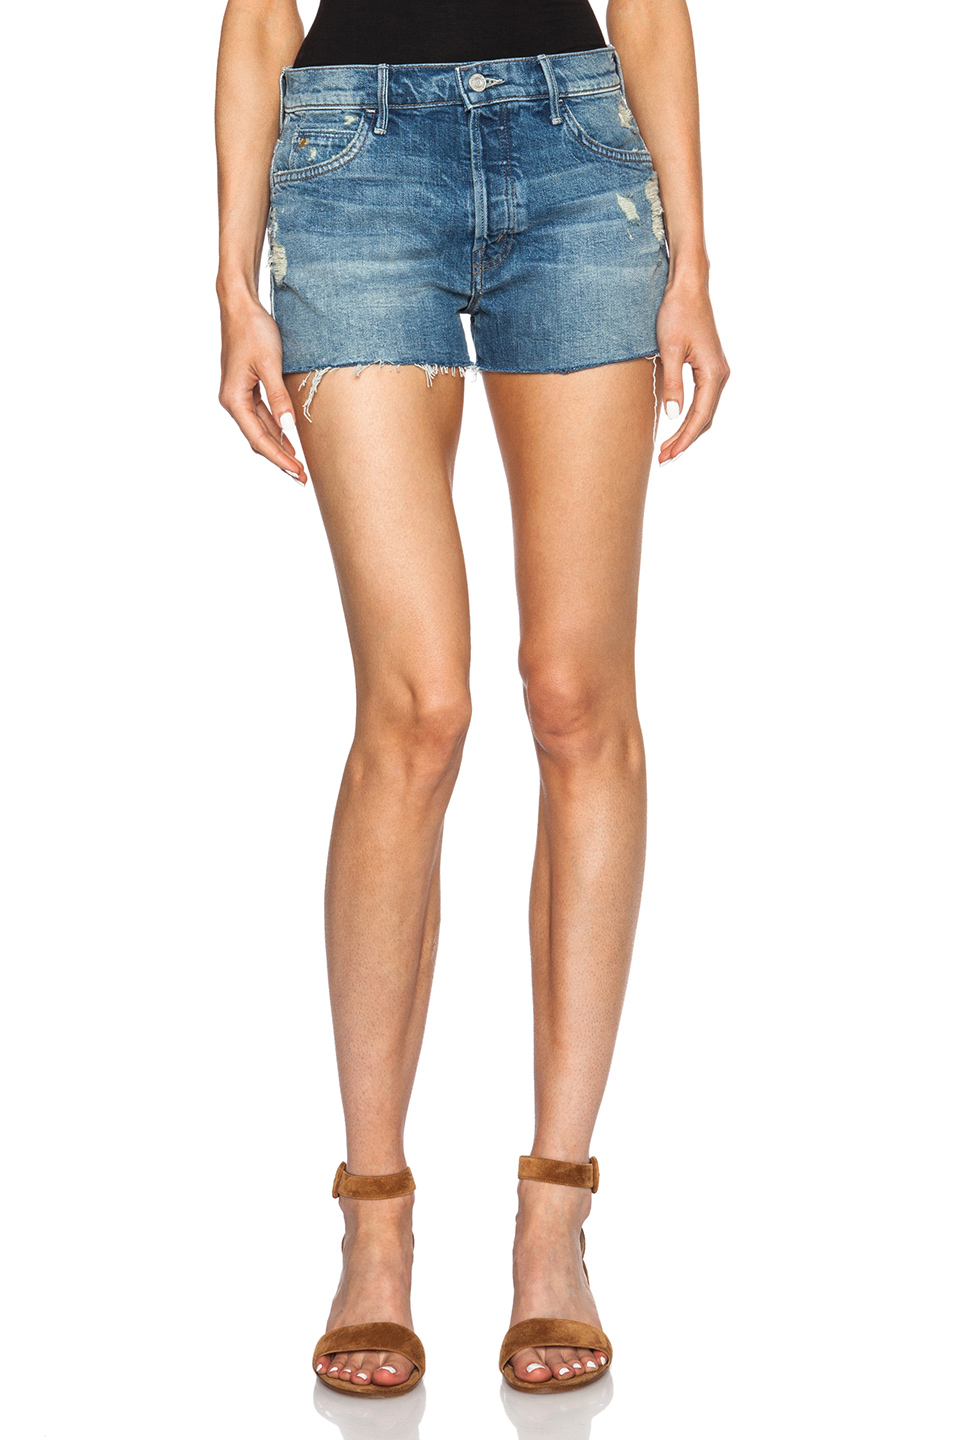 04fe6d71ef Lyst - Mother Candice Swanepoel + The Stunner Fray Shorts in Blue